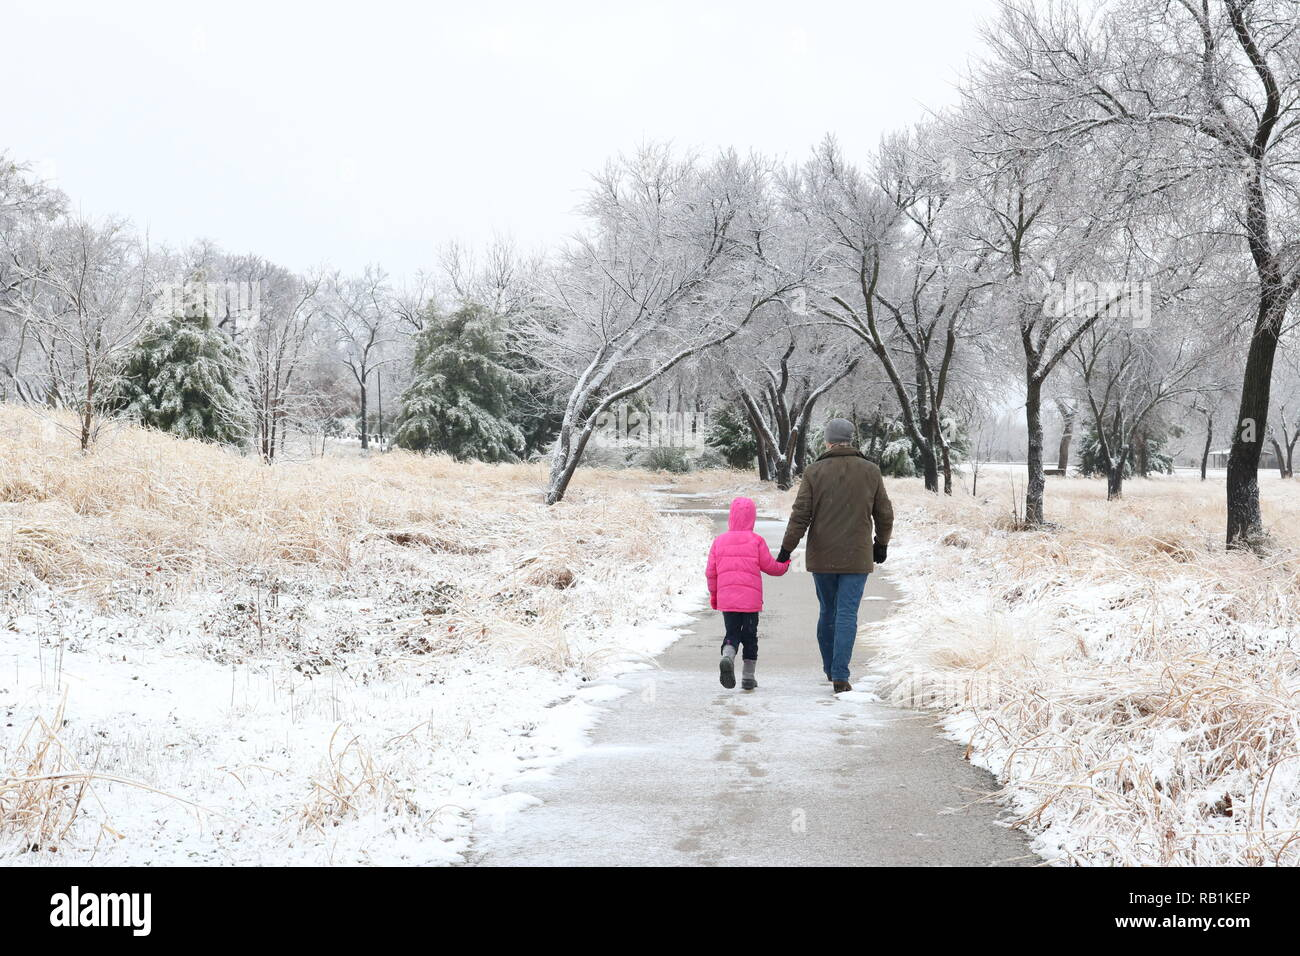 Father and his young daughter walking in a snowy landscape - Stock Image